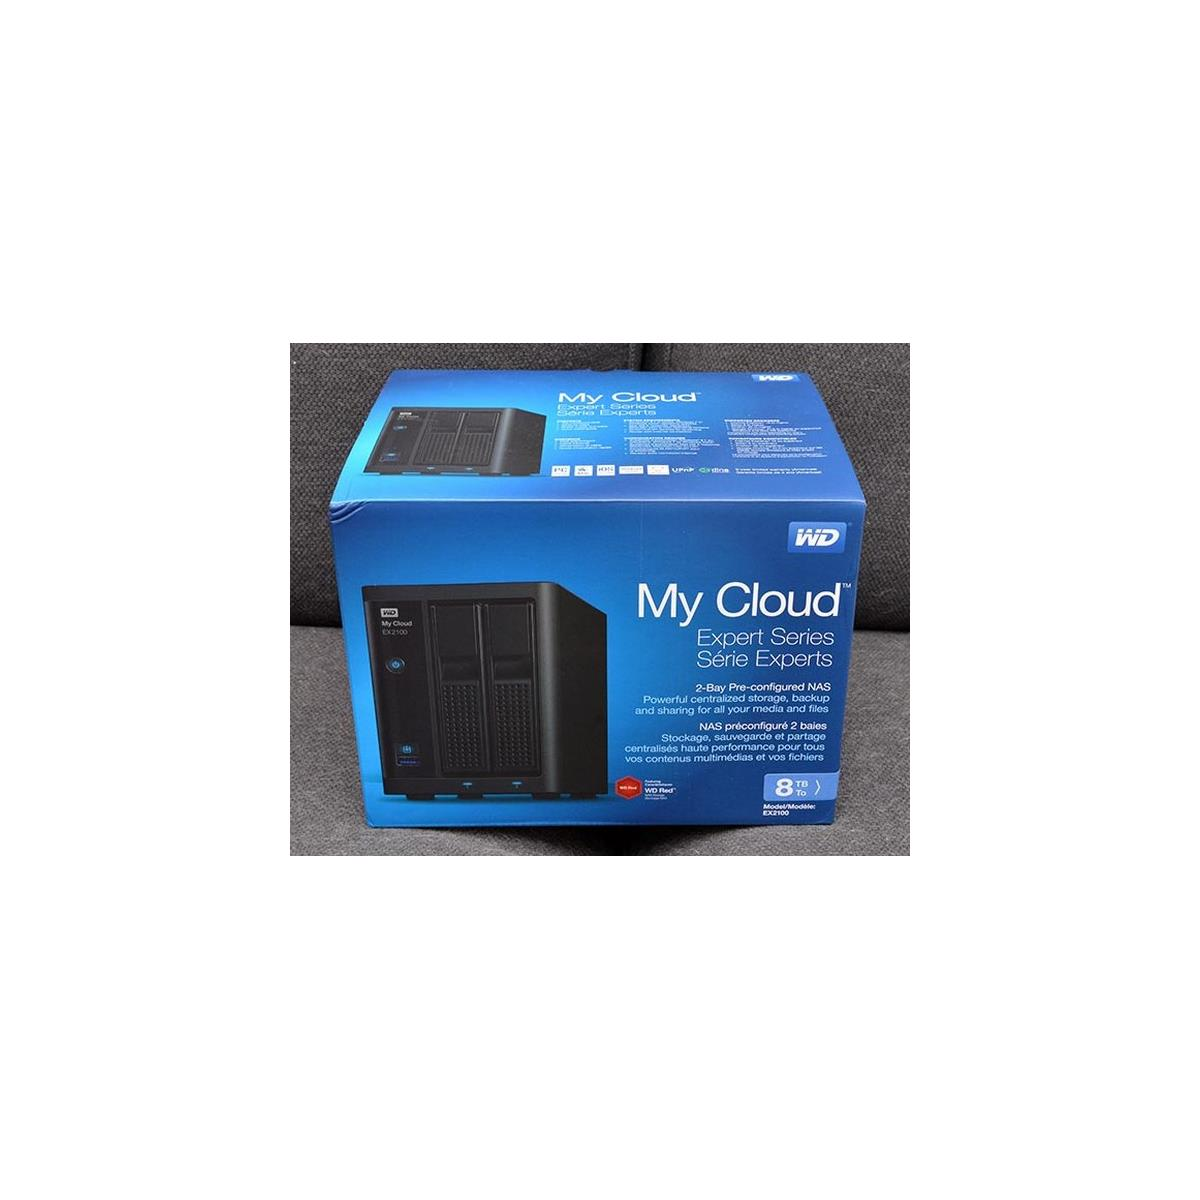 Wd My Cloud Ex2100 Dual Bay 8tb Nas Review Hothardware